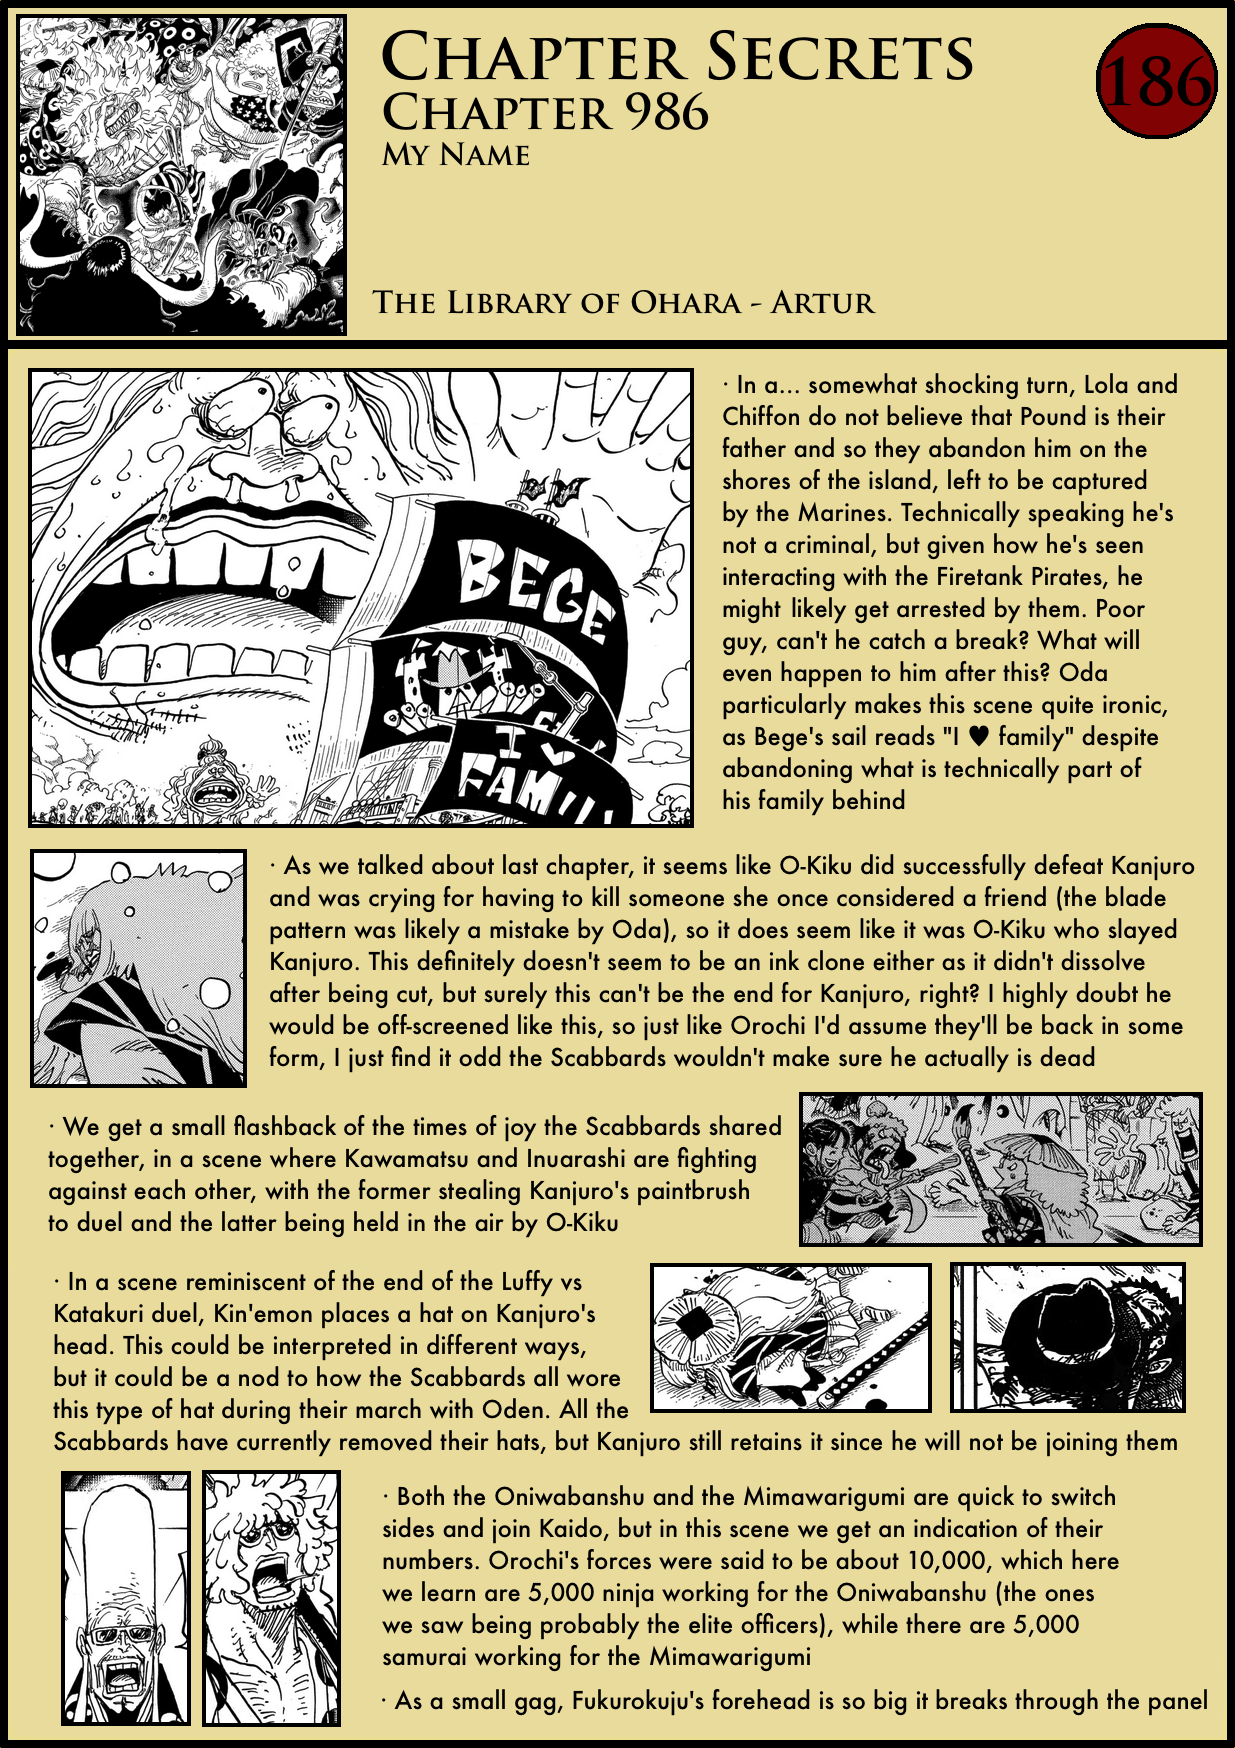 Chapter Secrets Chapter 986 In Depth Analysis The Library Of Ohara